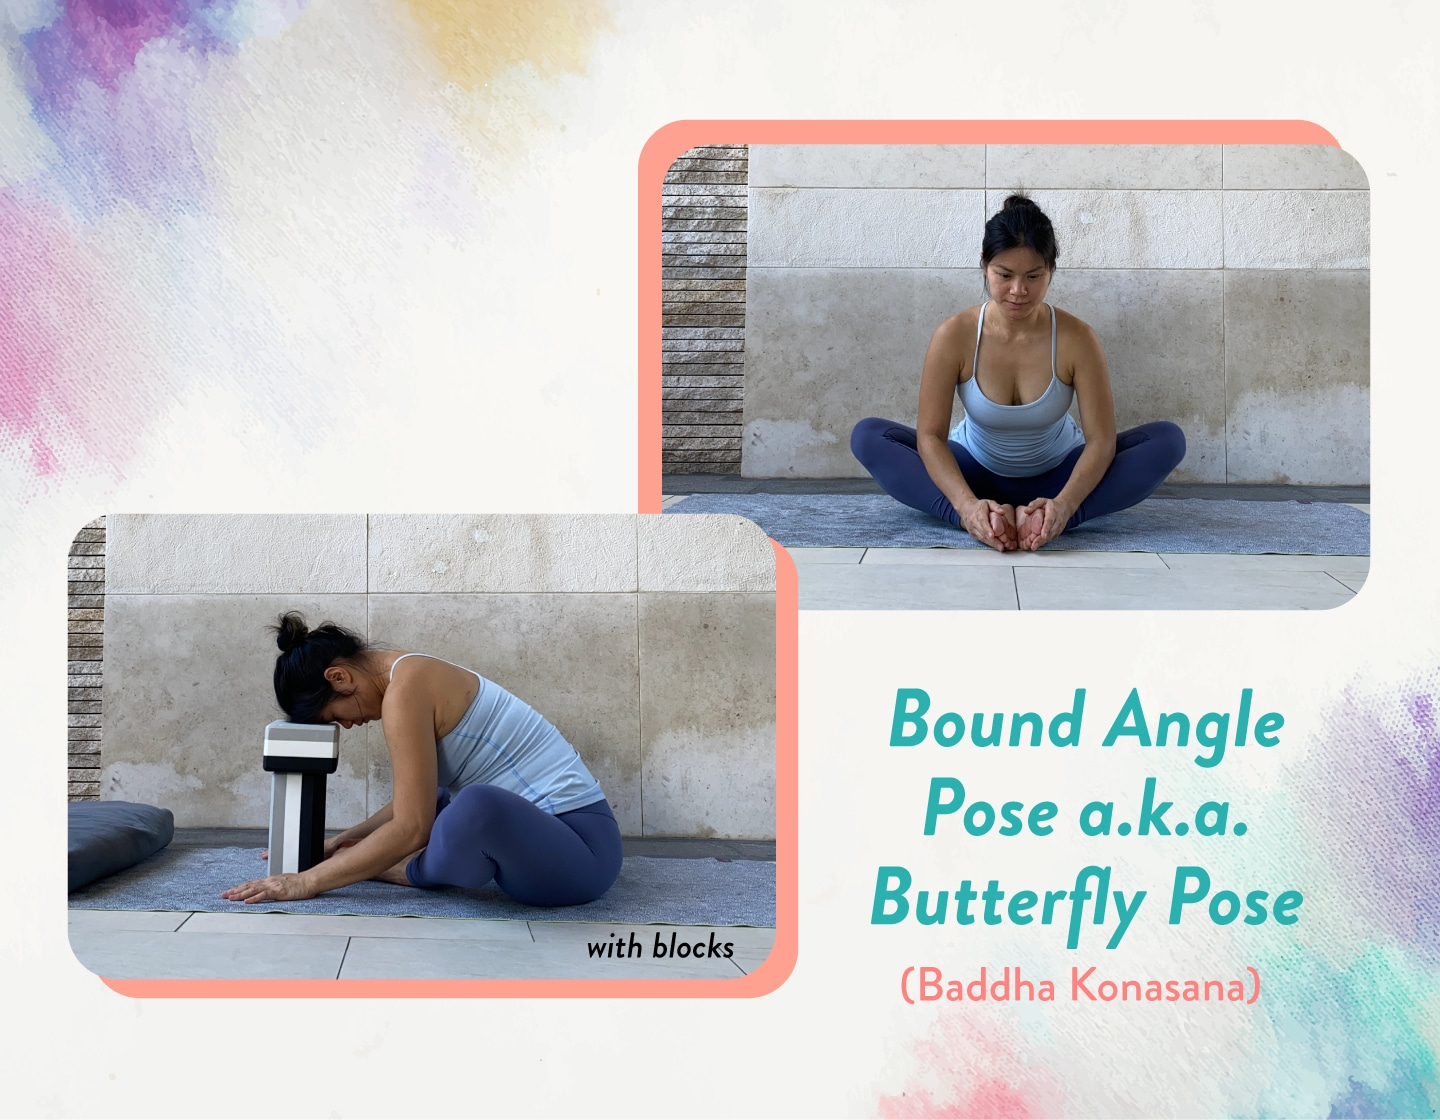 safe prenatal yoga Bound Angle pose